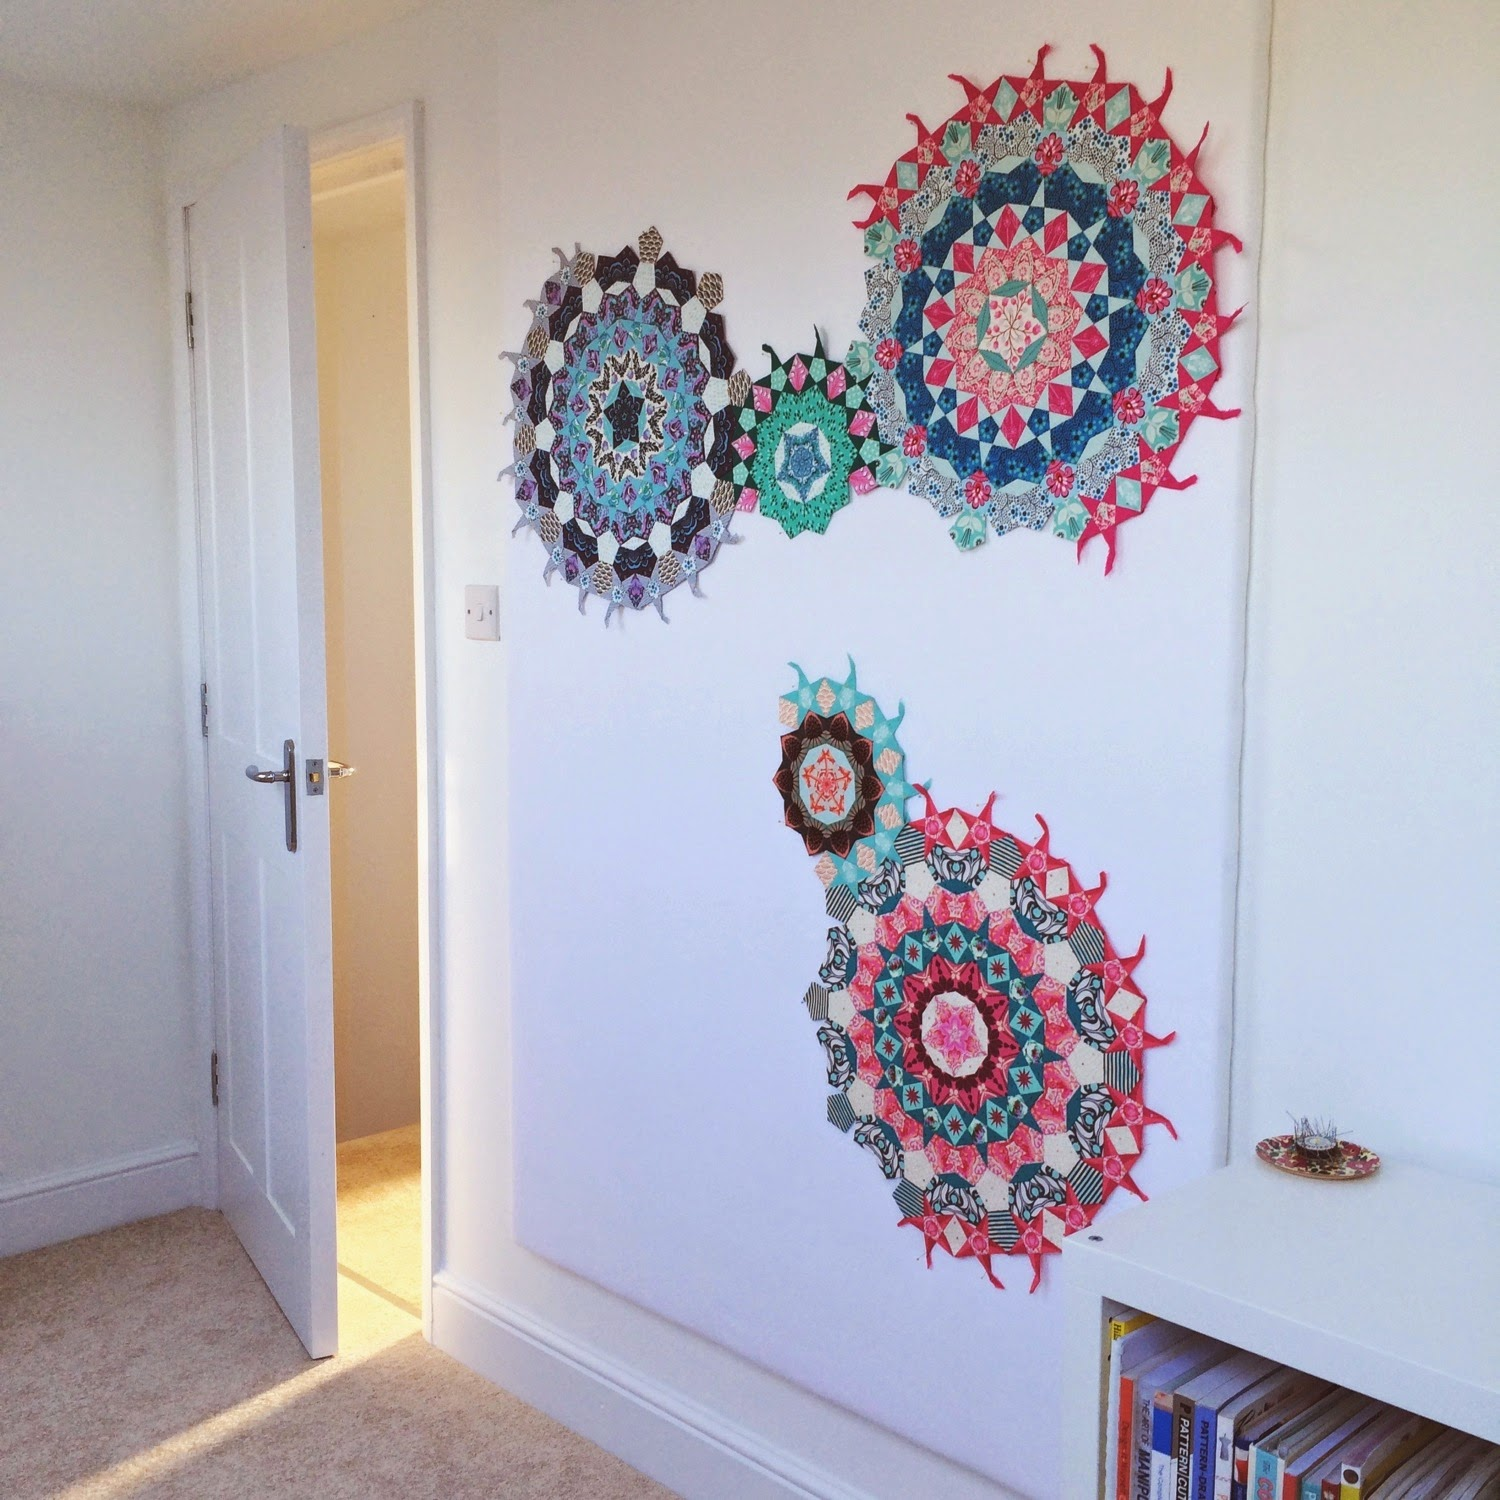 Flossie Teacakes: A quilt design wall